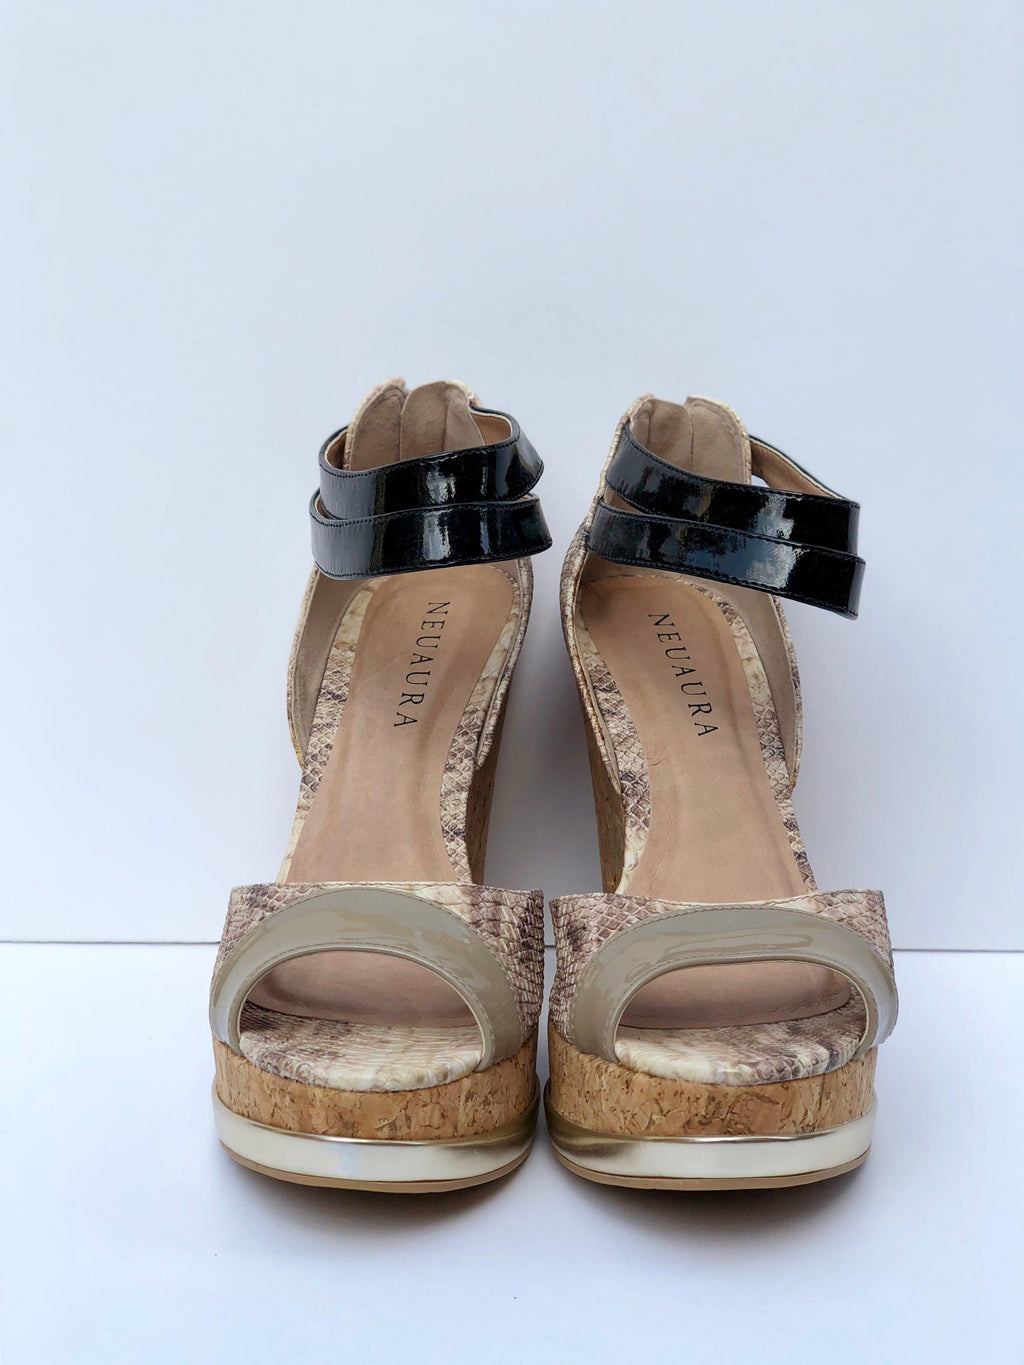 Black & Tan Neuaura Wedges - My Royal Closet